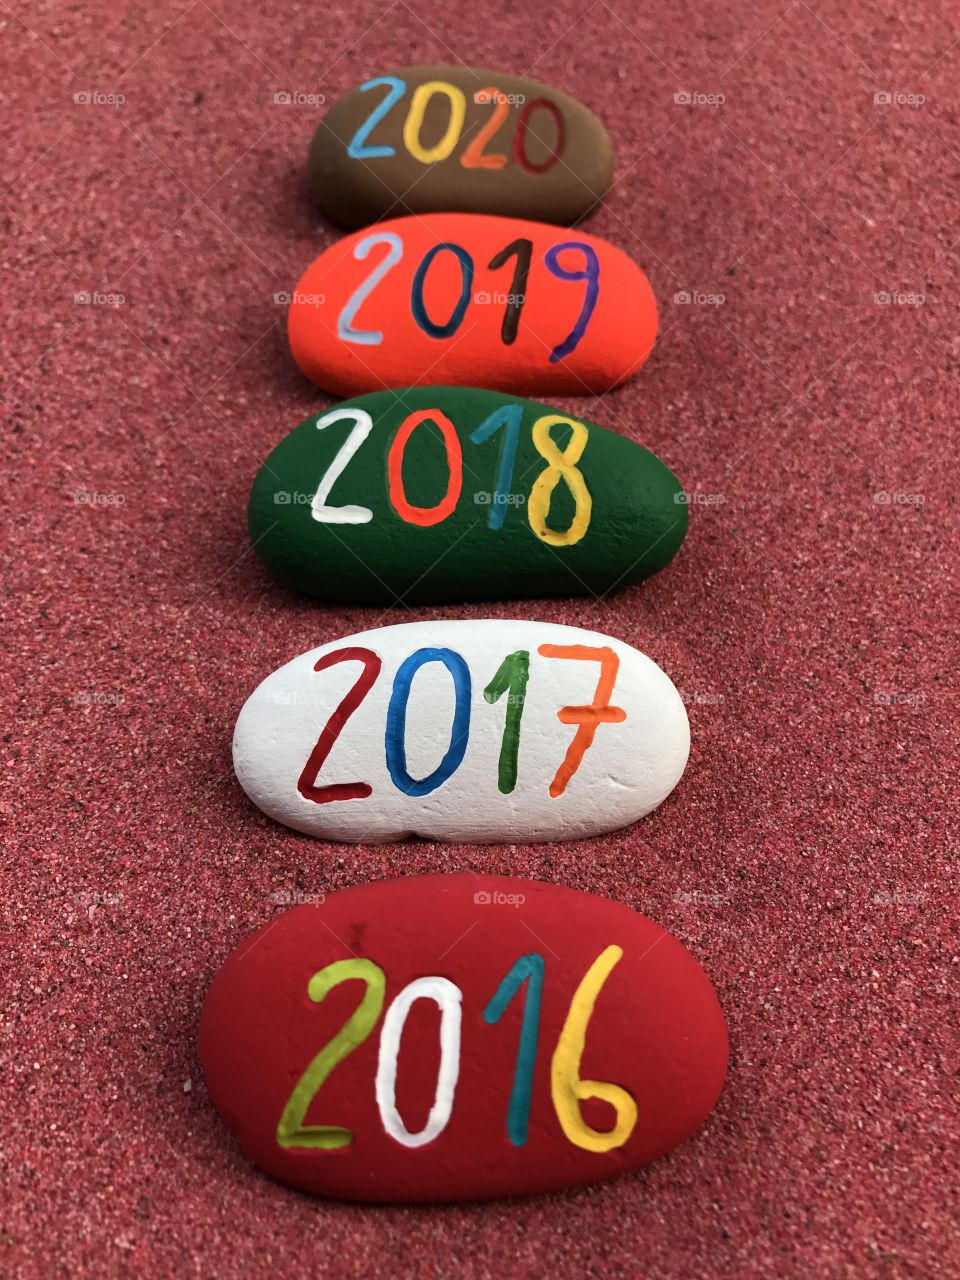 2016,2017,2018,2019,2020 on painted stones over red sand